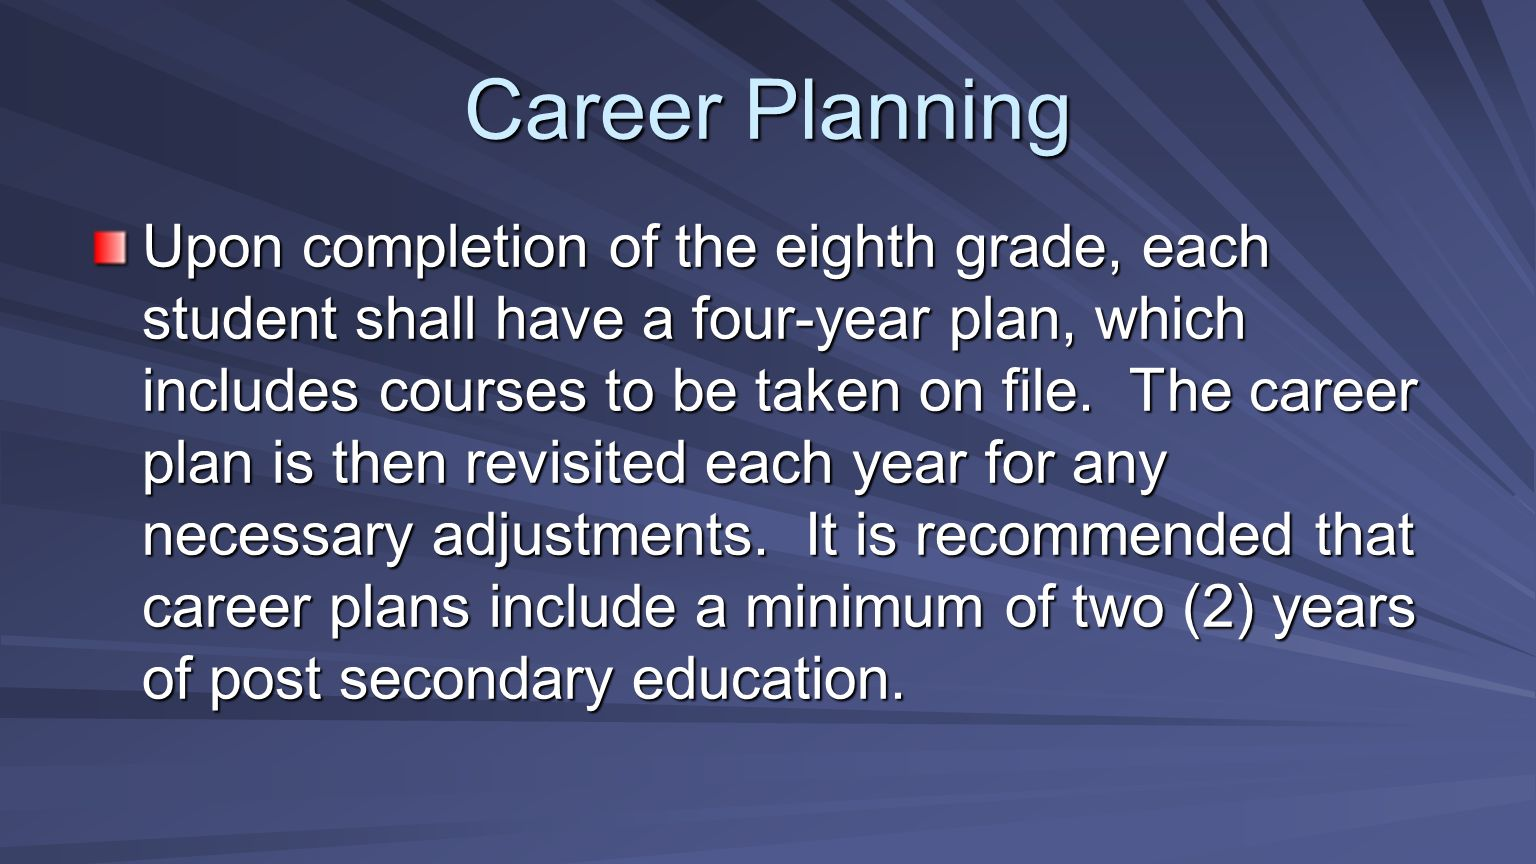 Career Planning Upon completion of the eighth grade, each student shall have a four-year plan, which includes courses to be taken on file. The career